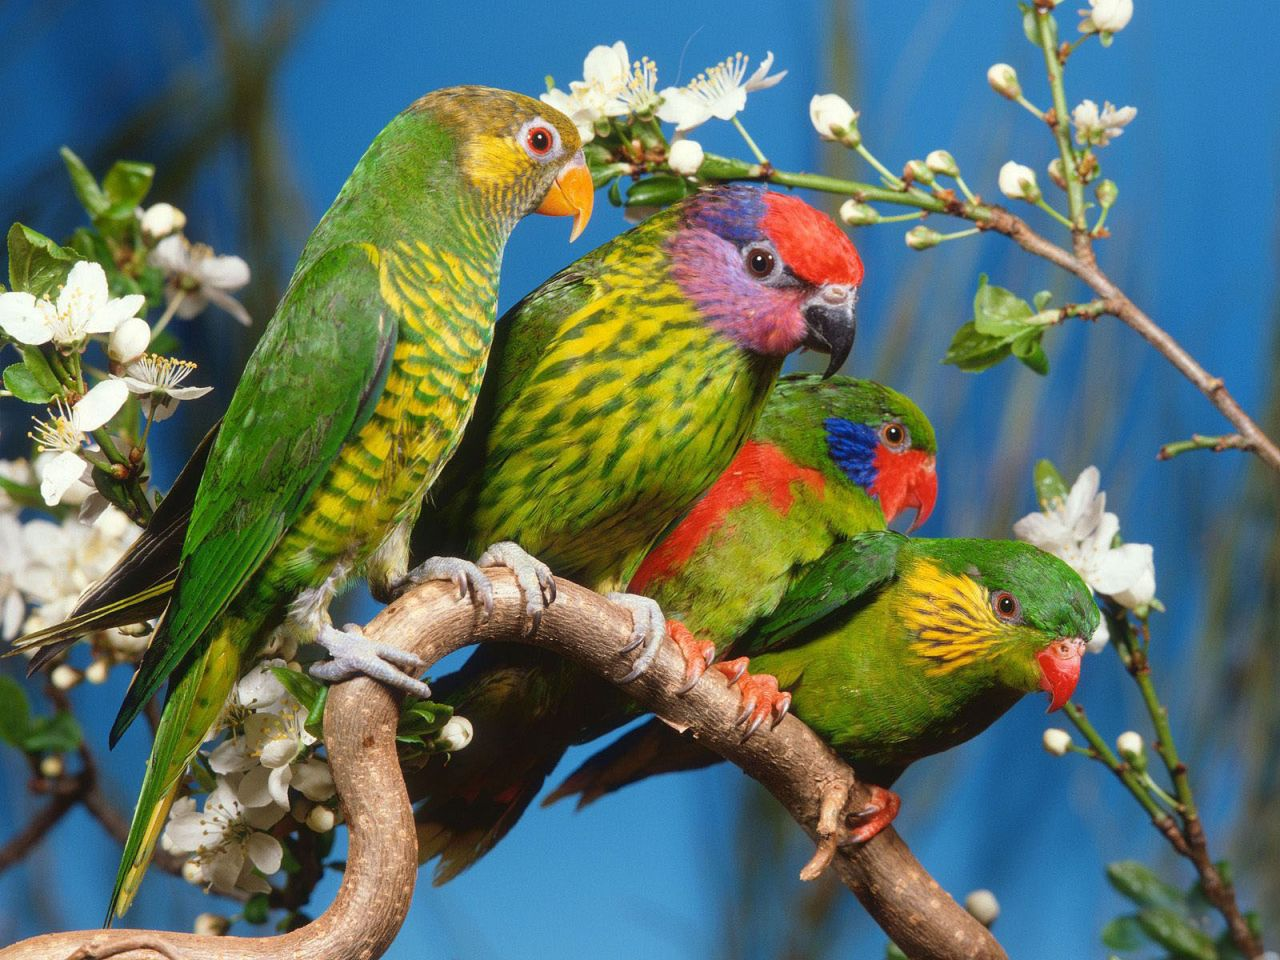 http://2.bp.blogspot.com/-5pyfoMGO7W4/TckKc5OZB0I/AAAAAAAAIh8/4XGIqJLLRKE/s1600/Beautiful+Colorful+Cute+Birds+Wallpapers+%25282%2529.jpg